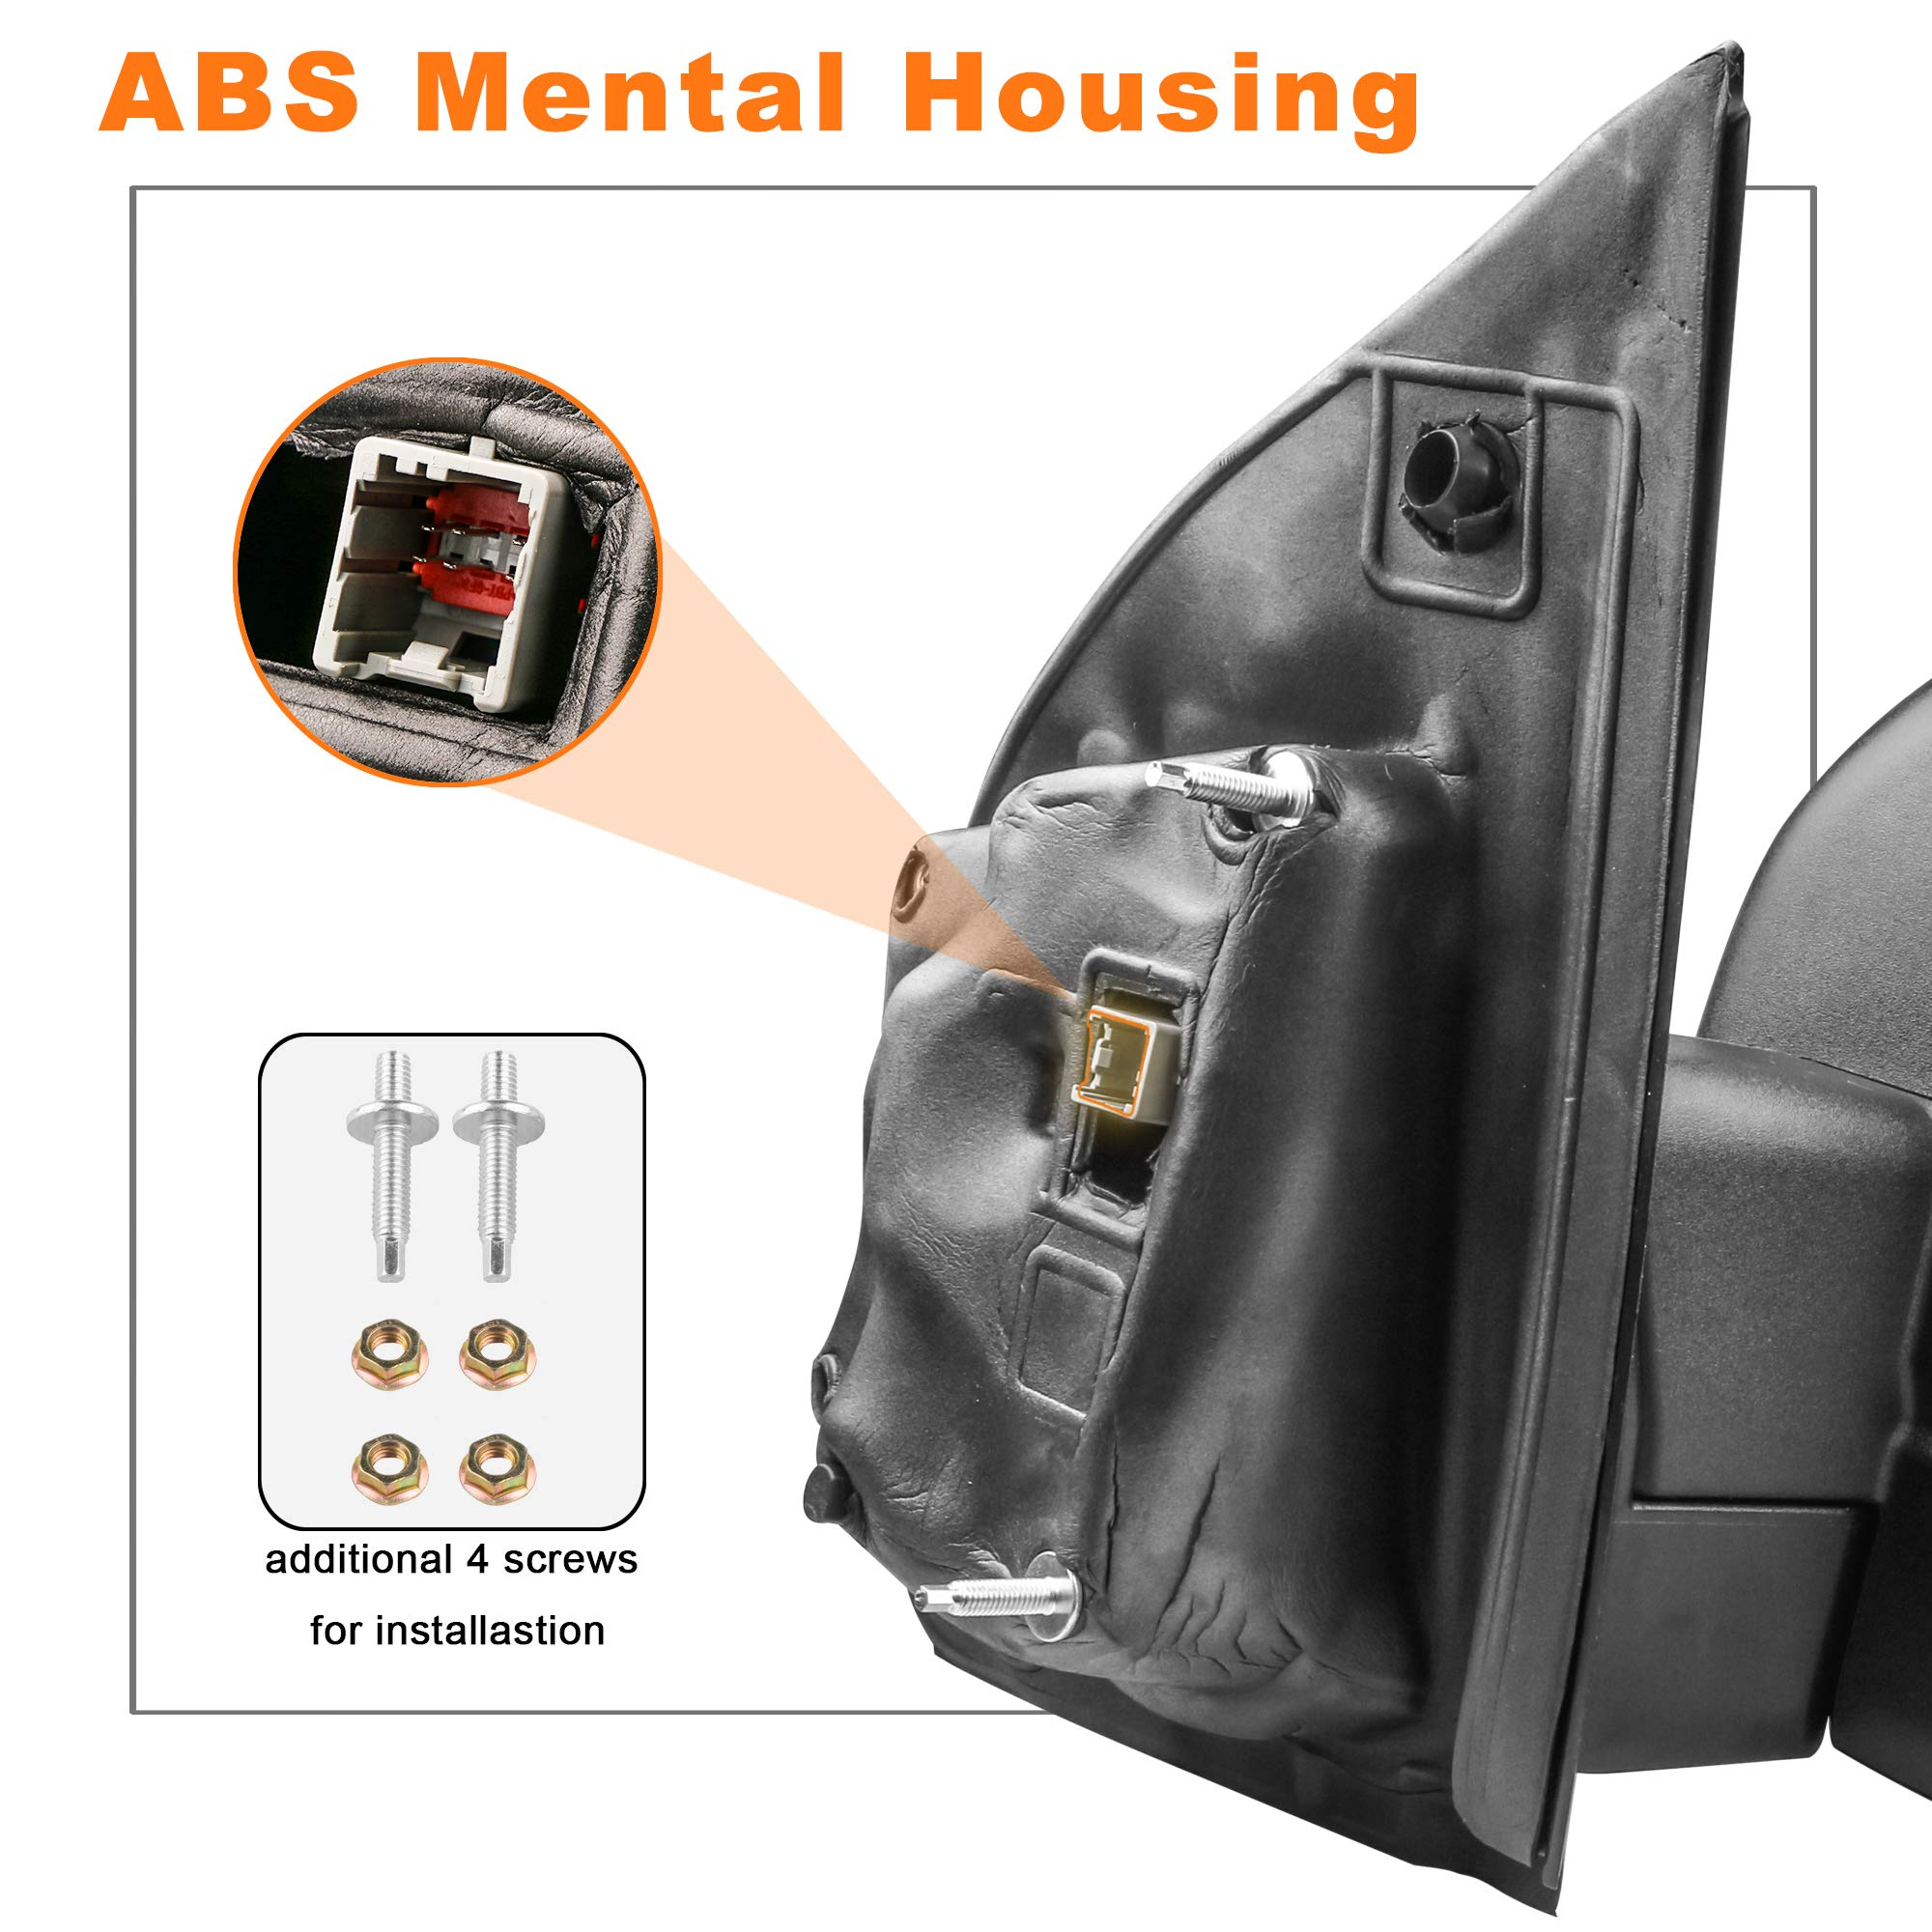 MOSTPLUS New 8 PIN Power Heated Towing Mirrors for Ford F150 2015 2016 2017 w/Turn Signal (Left+Right Side Mirror) by MOSTPLUS (Image #5)